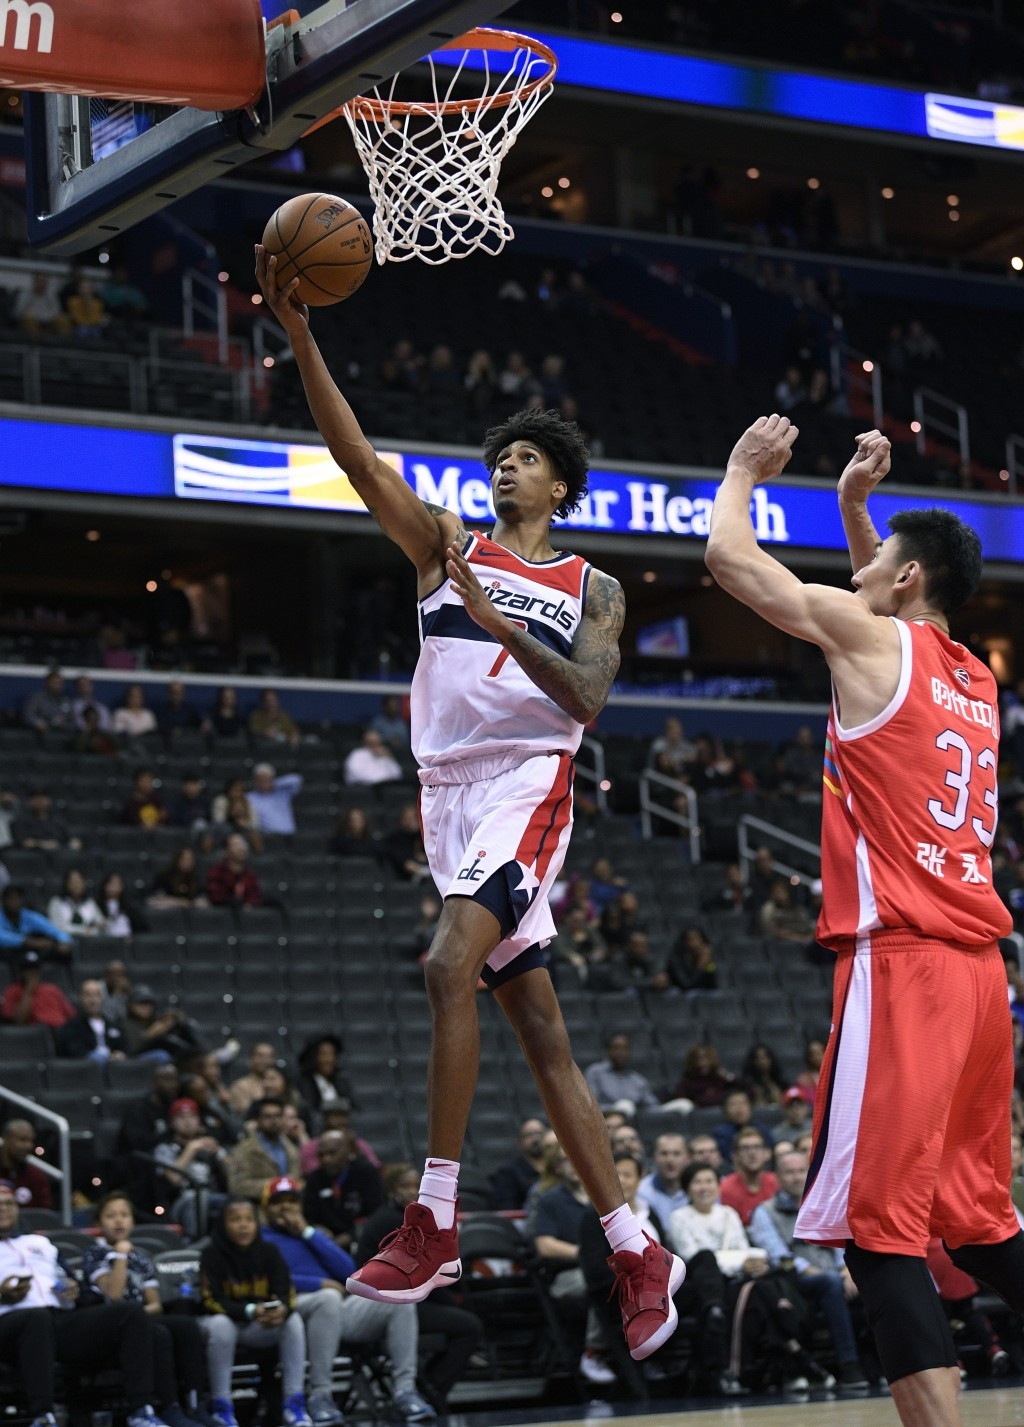 Washington Wizards forward Devin Robinson (7) goes to the basket past Guangzhou Long-Lions center Yongpeng Zhang (33) during the second half of an NBA